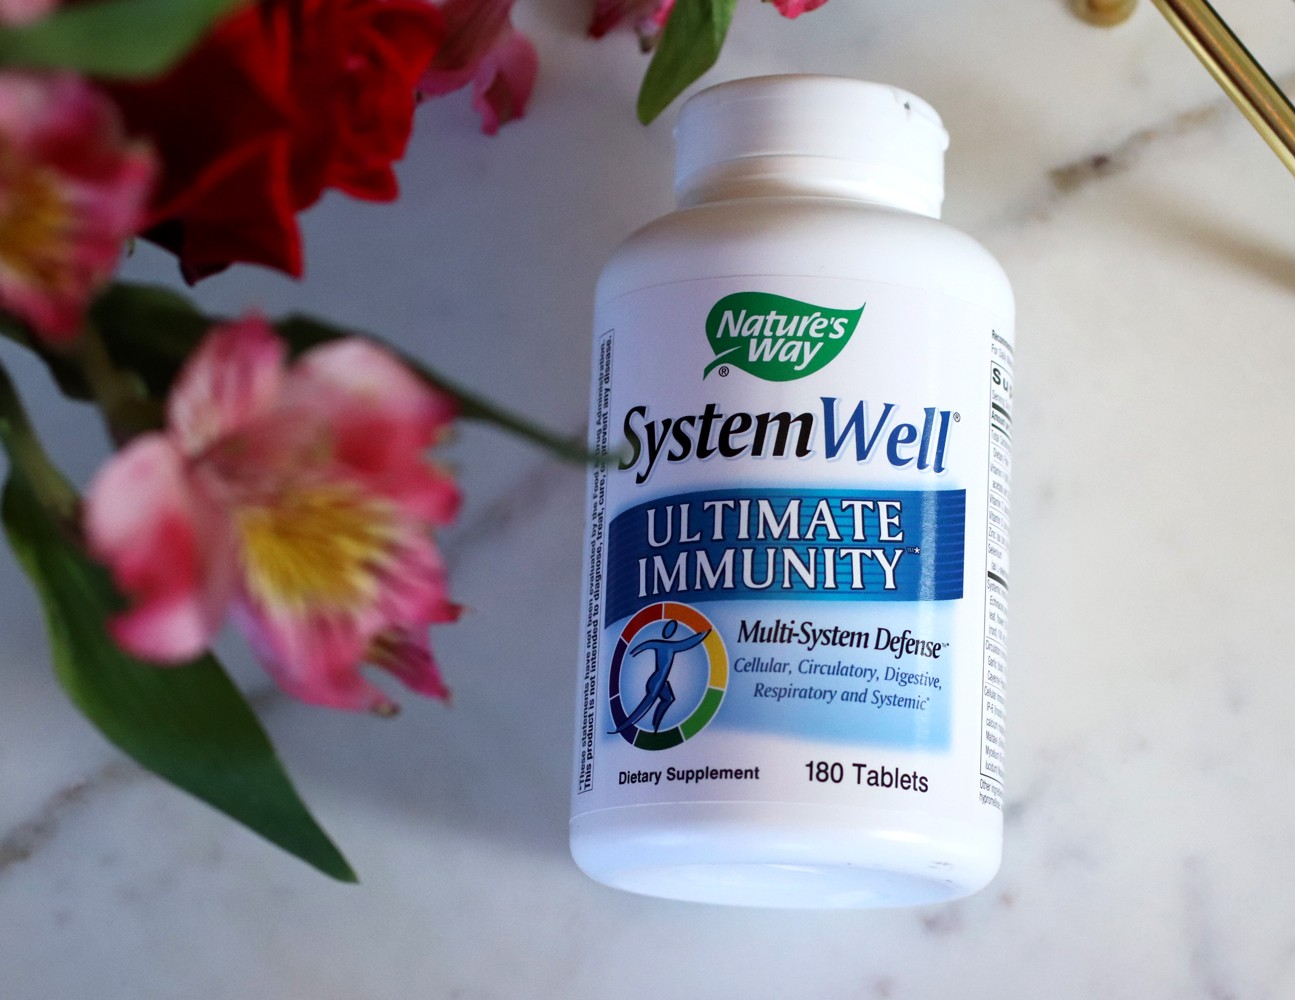 Best supplements for your immune system - Nature's Way from iHerb - SystemWell Ultimate Immunity